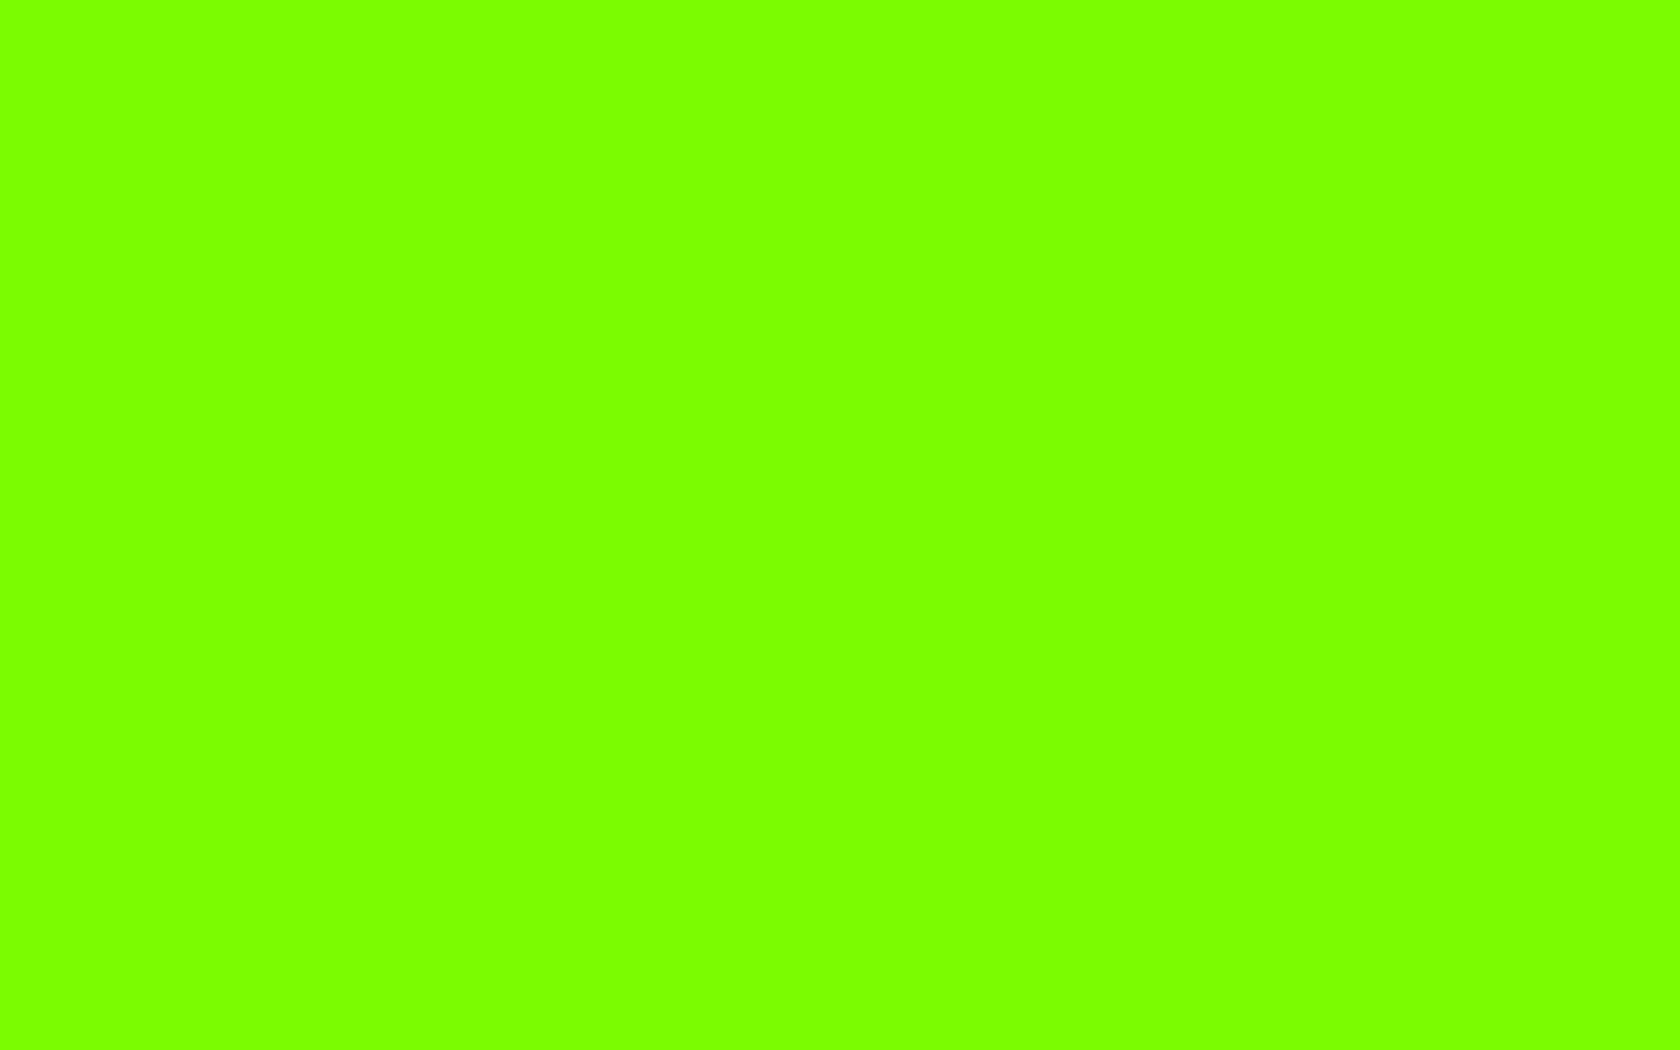 1680x1050 Lawn Green Solid Color Background